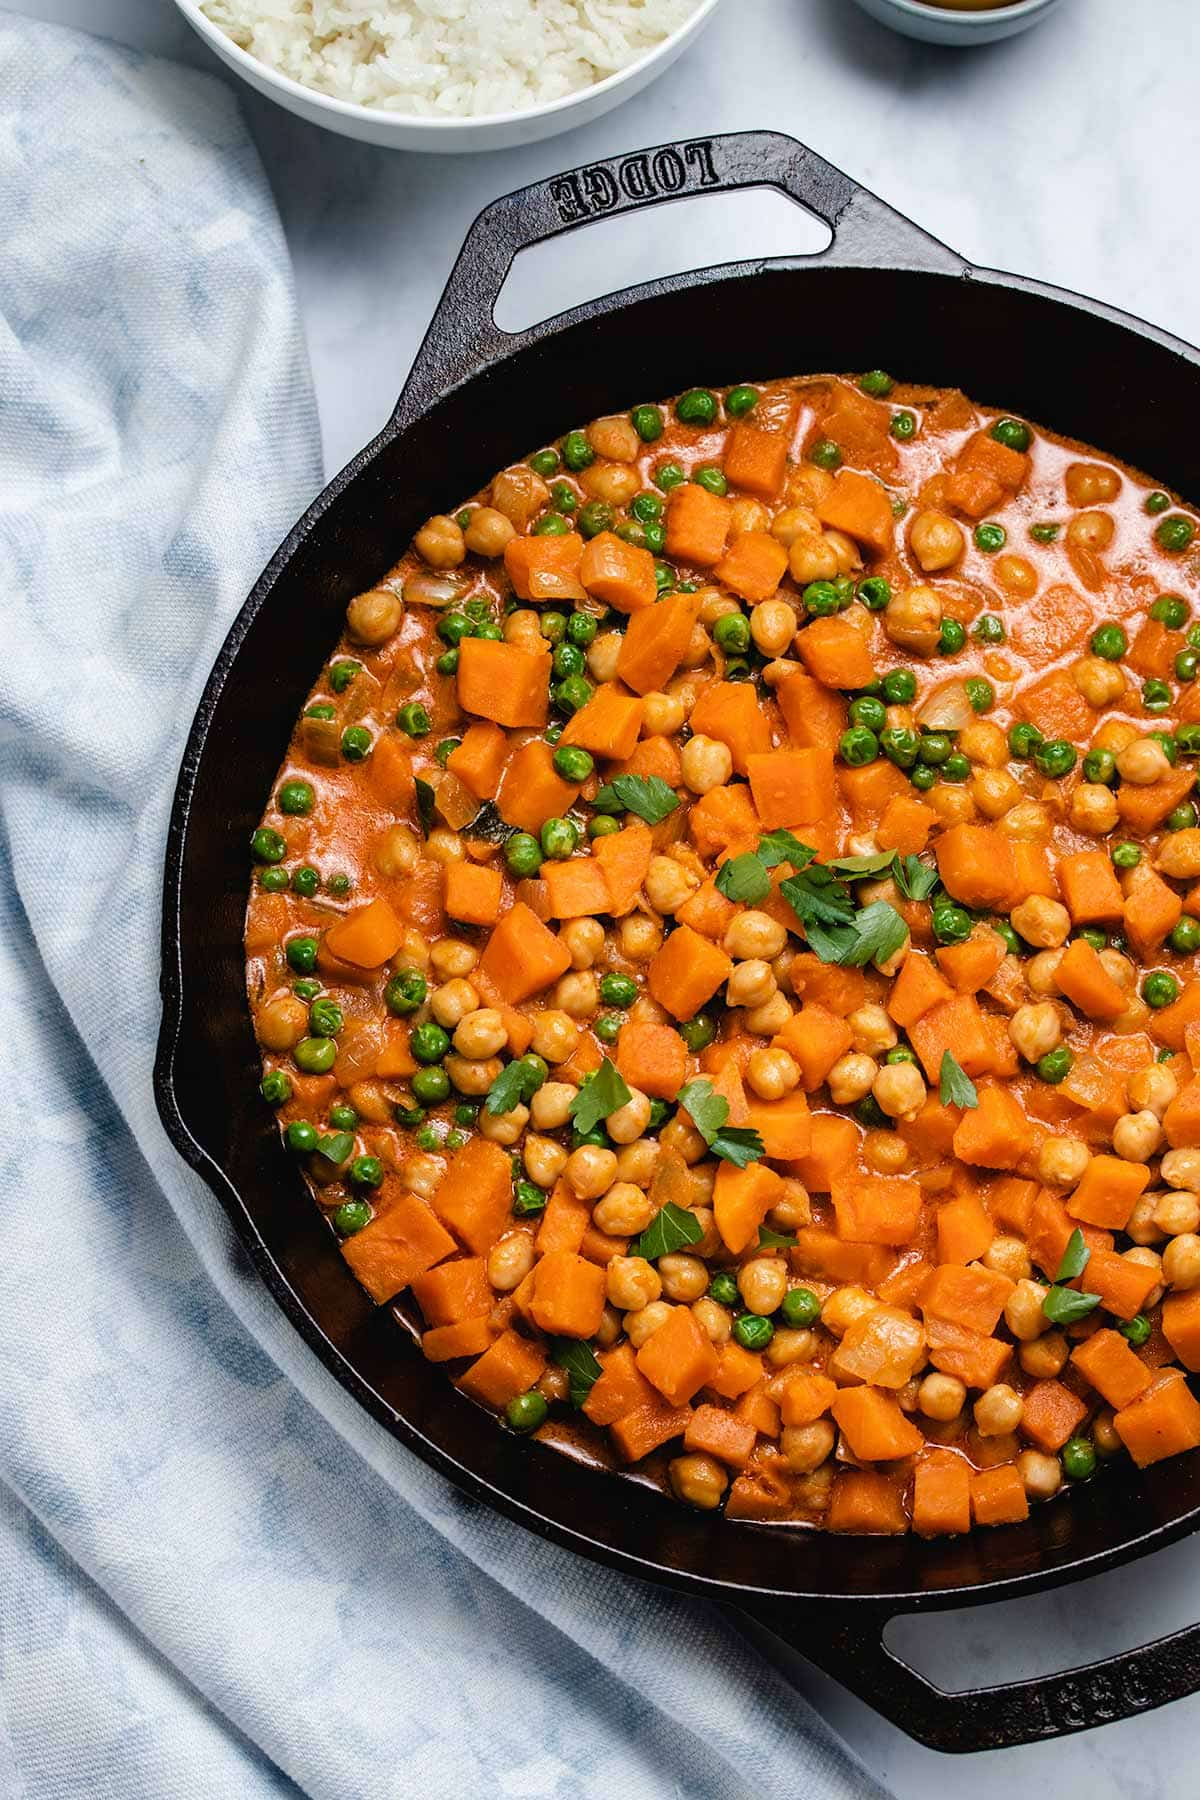 Sweet Potato Chickpea Coconut Curry in a cast iron skillet next to a blue linen and rice in a white bowl